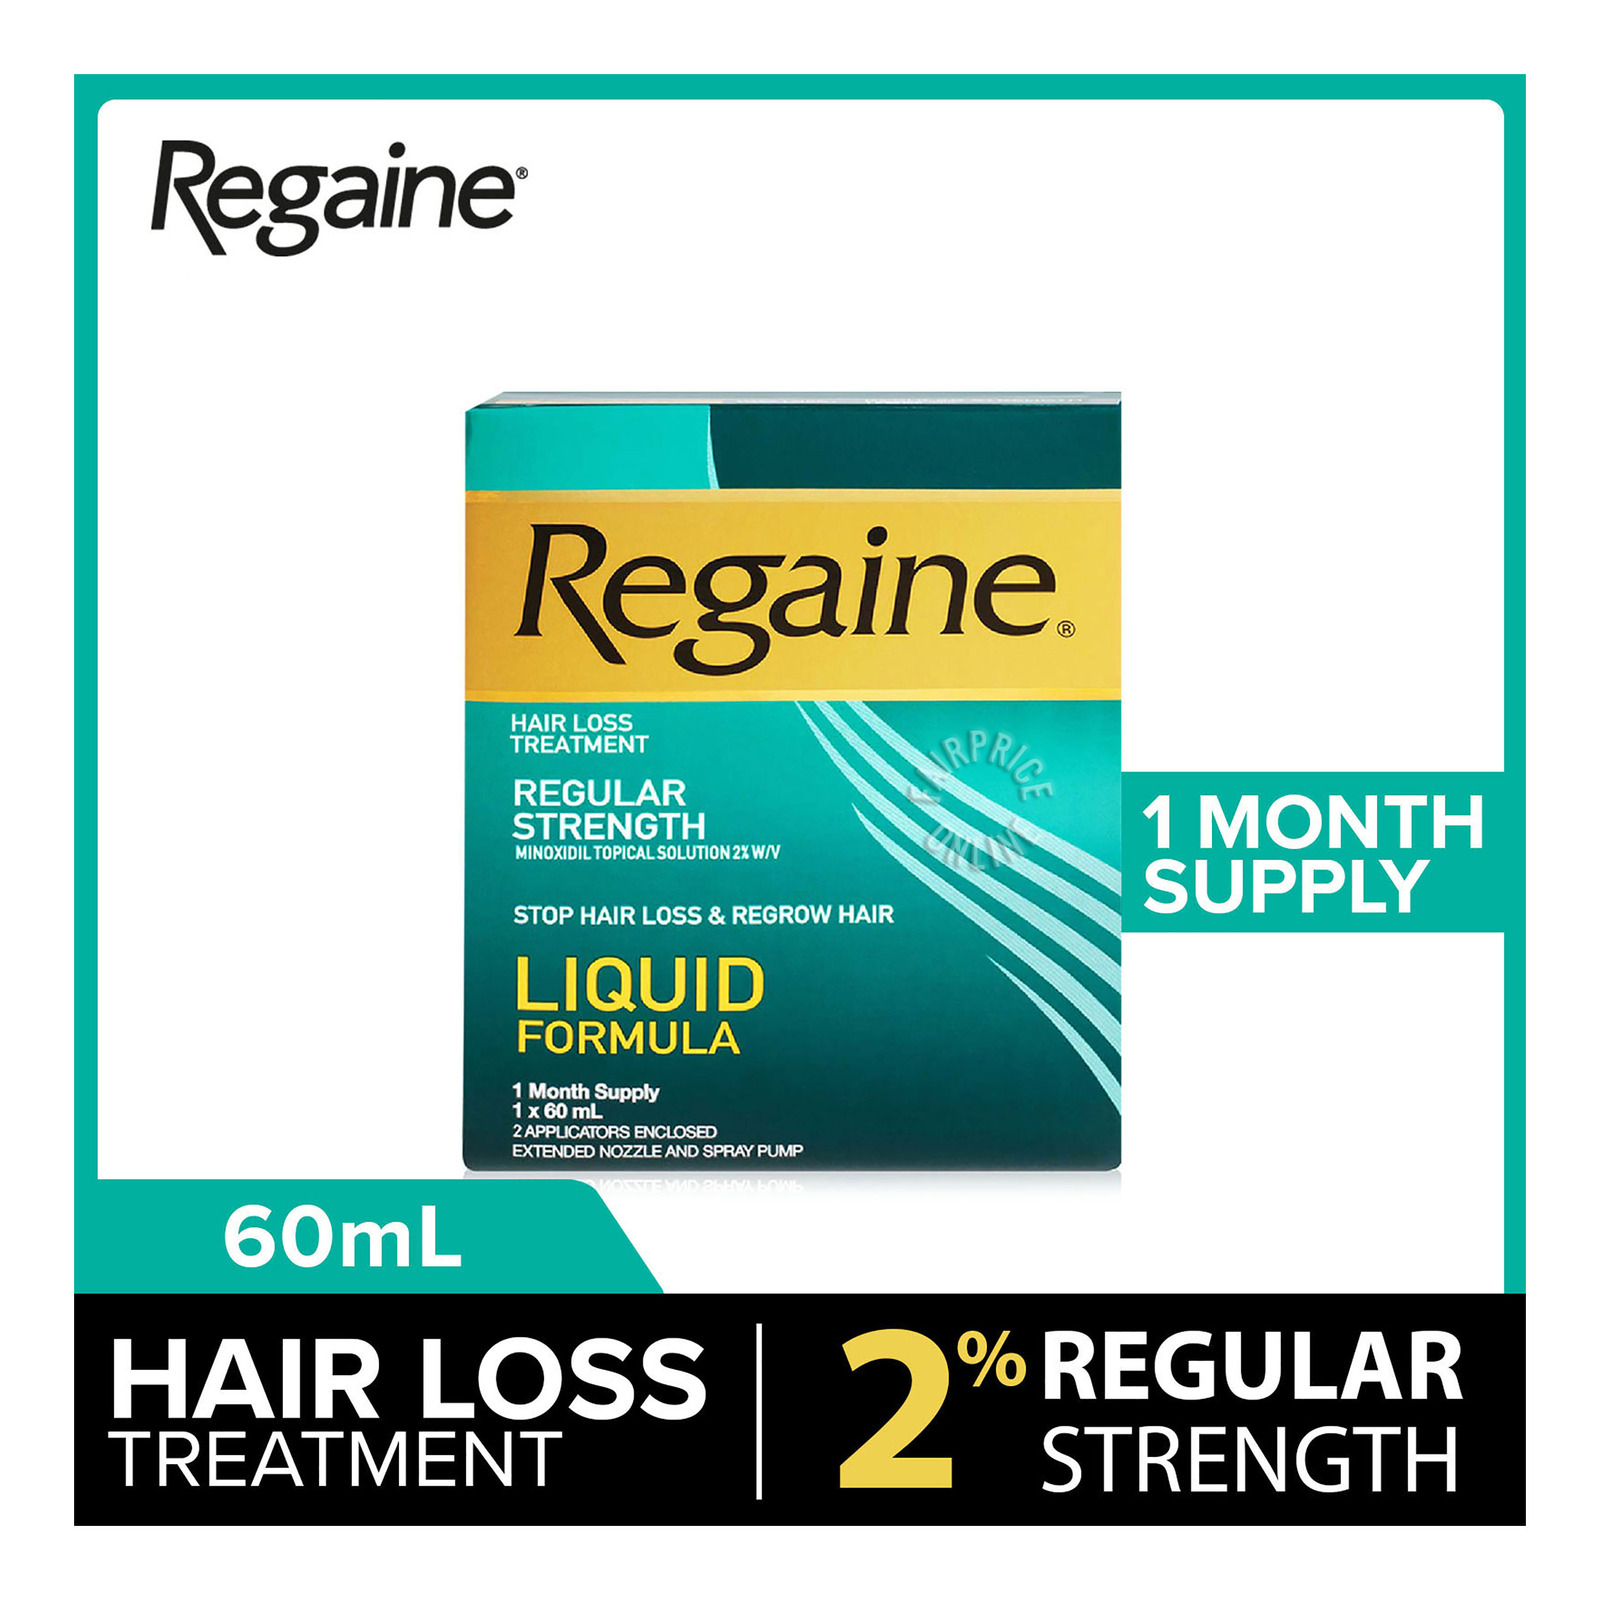 Regaine Regular Strength Hair Loss Treatment 2% Minoxidil Solution, 60ml